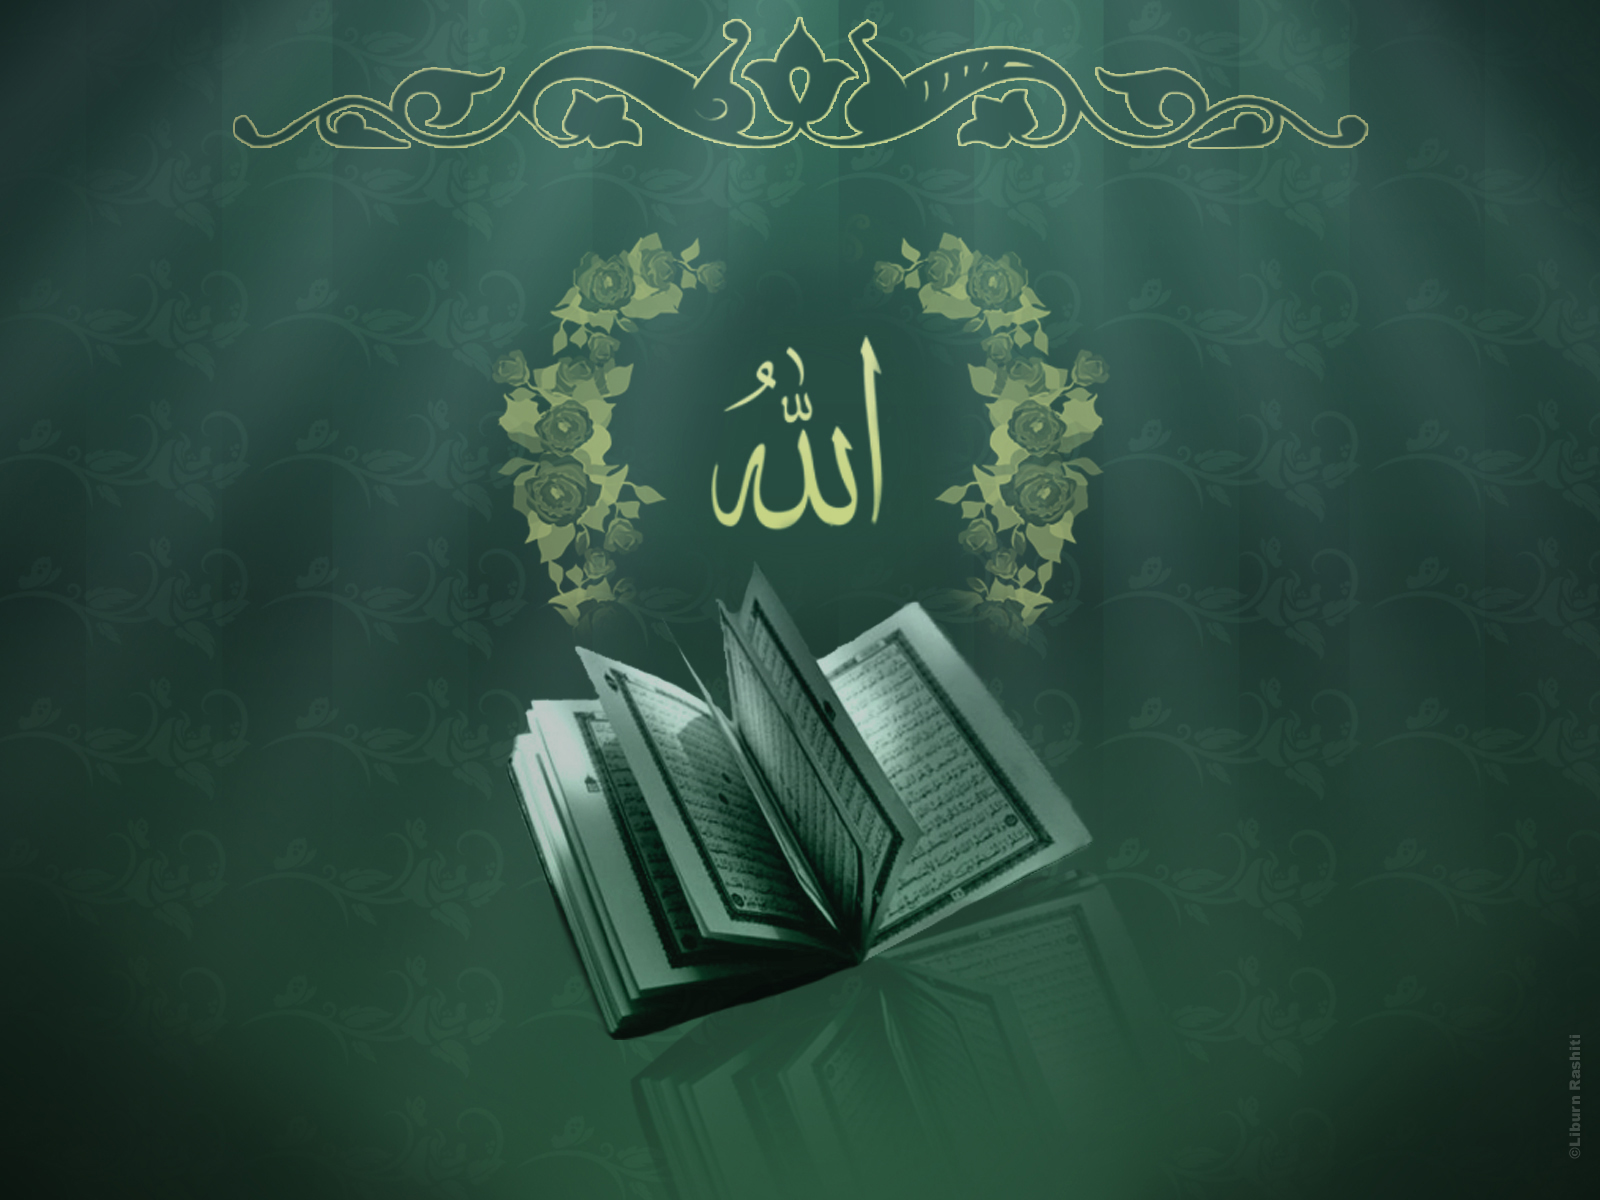 http://4.bp.blogspot.com/-i-mm3eFBvYE/TmOaueRULCI/AAAAAAAAAN8/-Khbnsjz-98/s1600/Islamic-Wallpapers-110.jpg